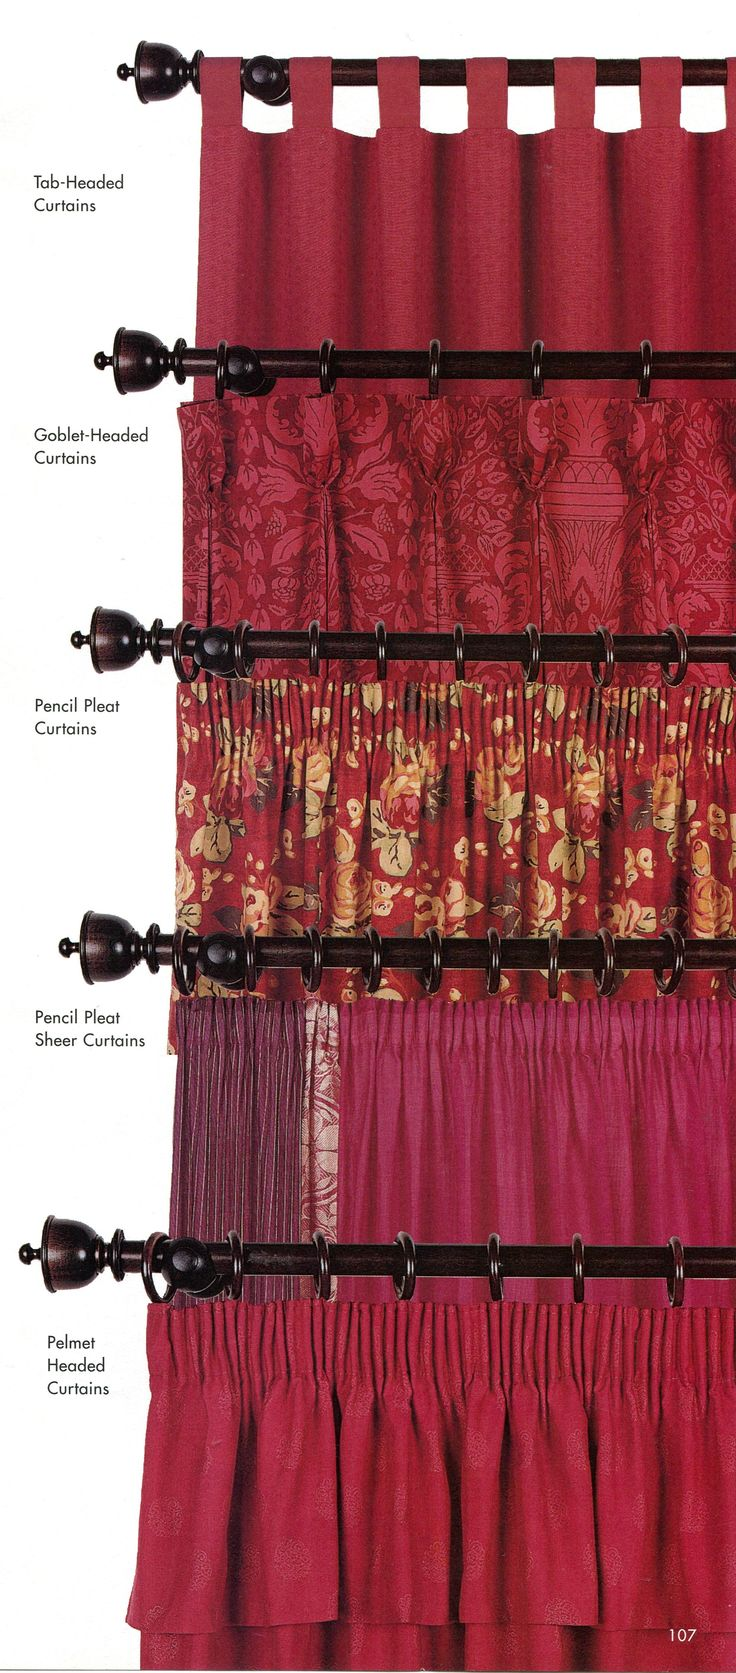 Curtain heading styles, a useful guide